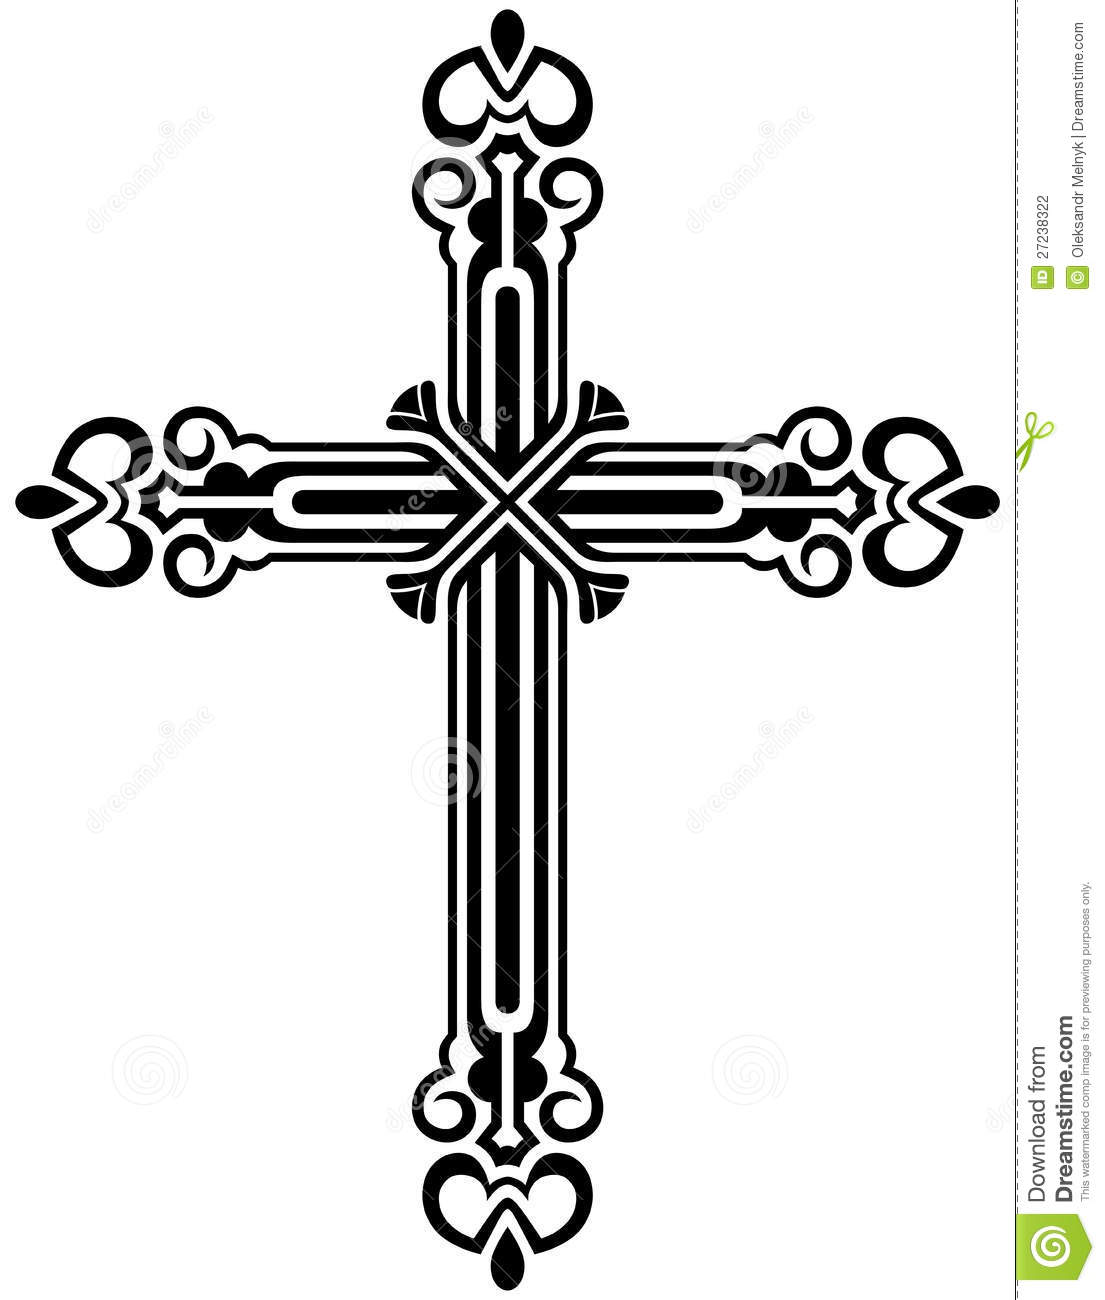 1105x1300 Crucifix Clipart Black And White Religious Cross Design Llection